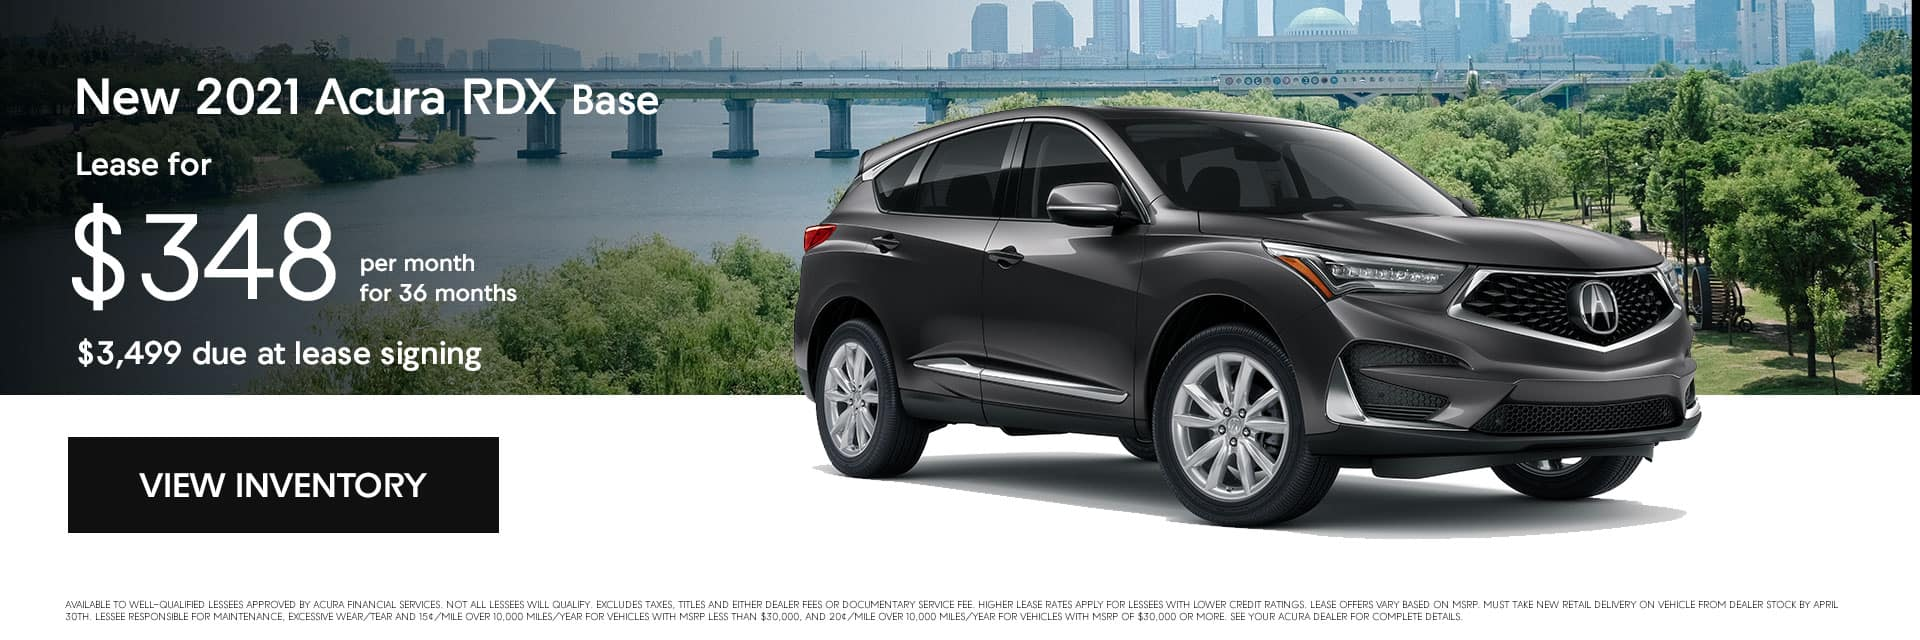 New 2021 Acura RDX Base, Lease for $348.00 per month for 36 months $3,499 due at lease signing.